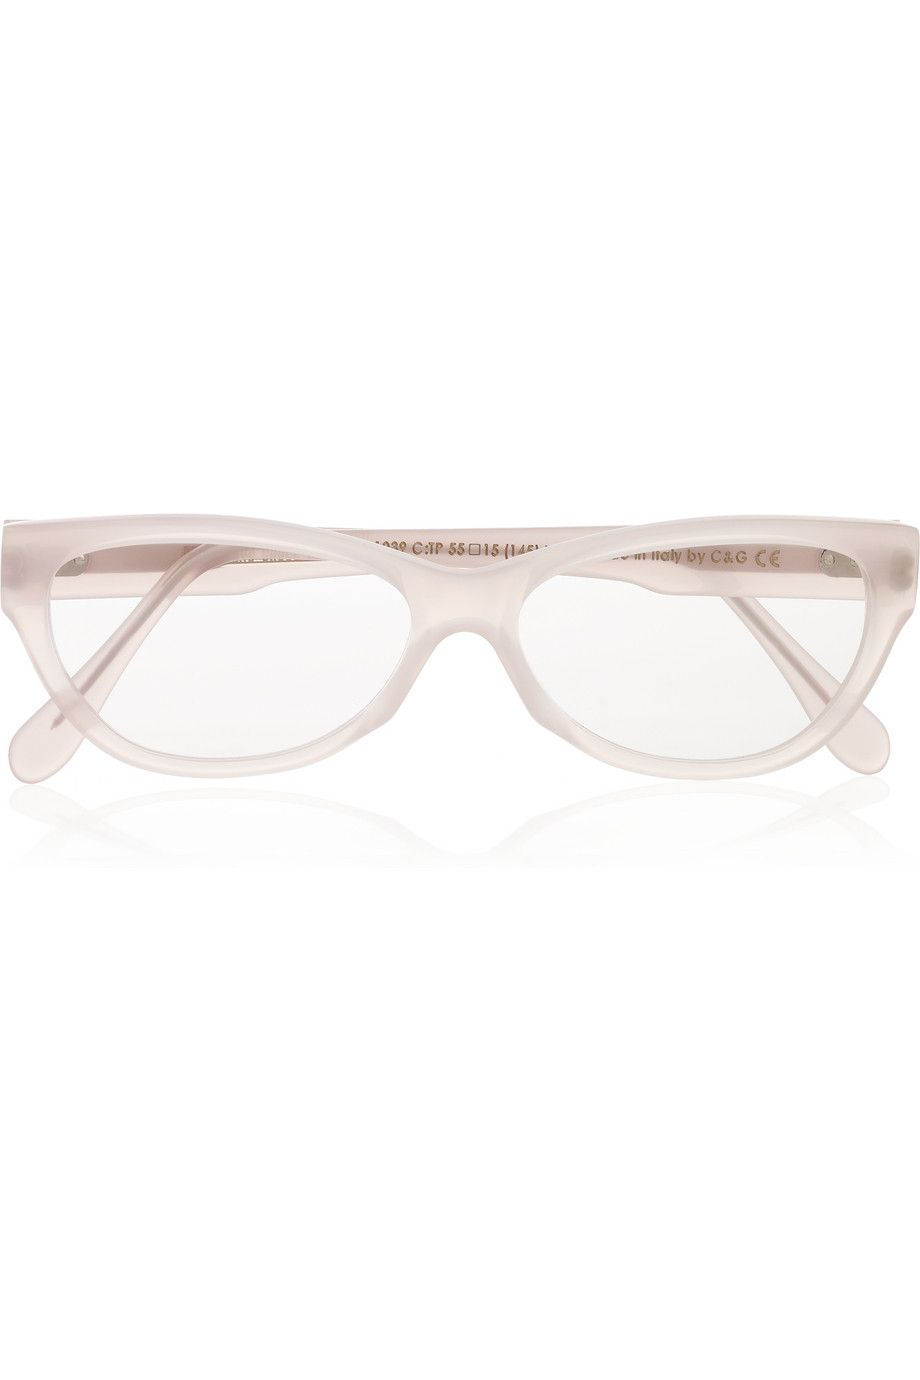 b746dbf38a1 CUTLER AND GROSS Cat eye-frame acetate optical glasses